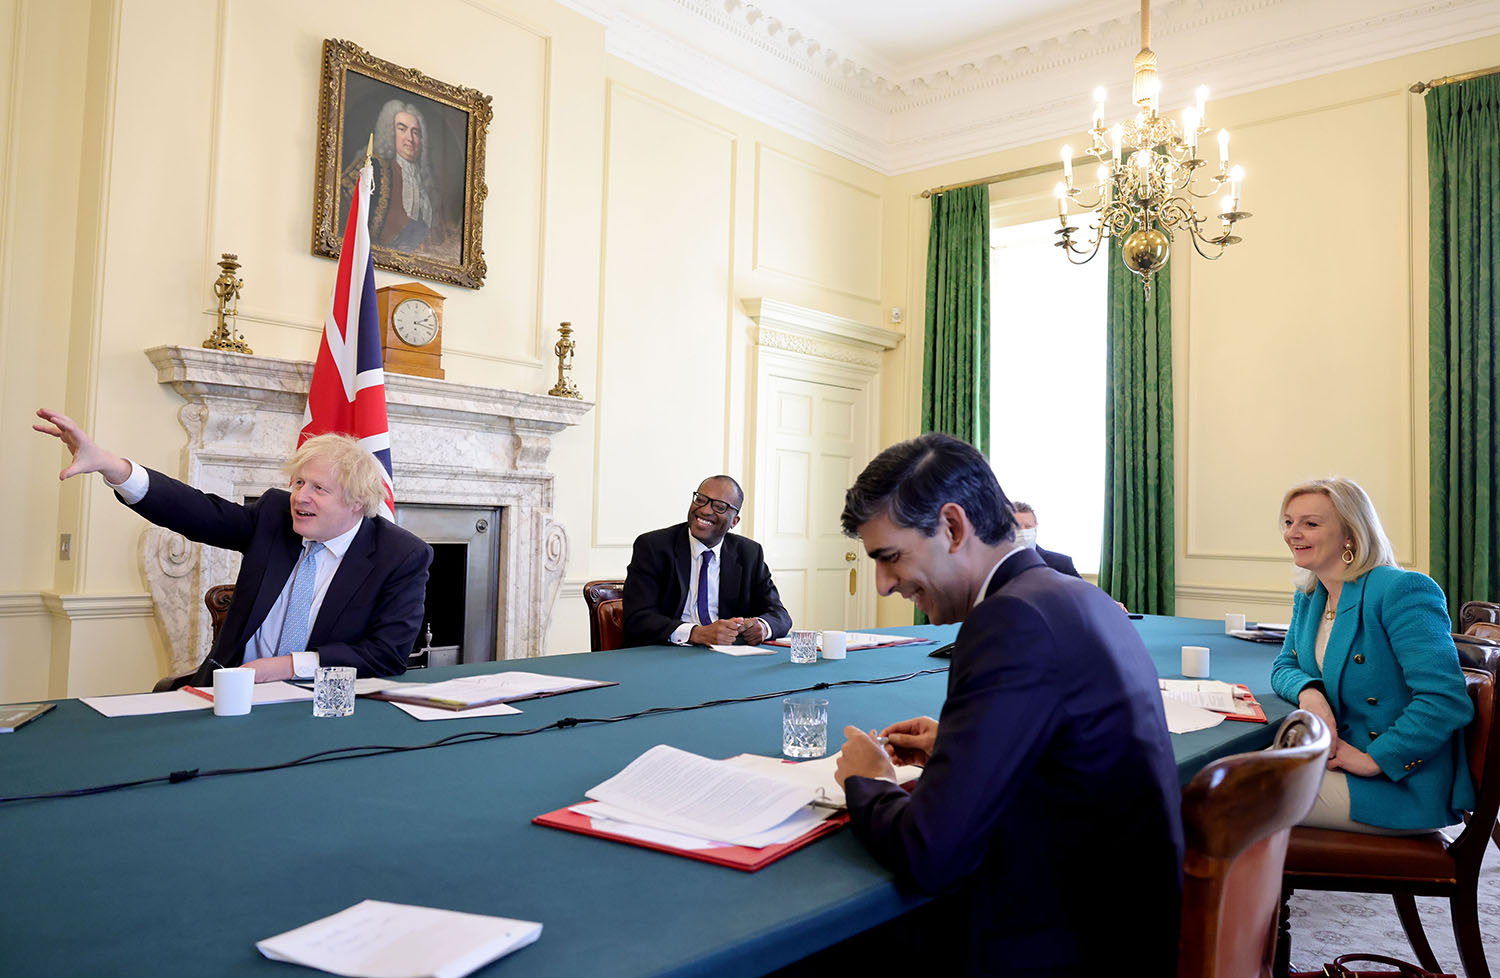 British Prime Minister Boris Johnson meets with members of his Build Back Better Business Council including Kwasi Kwarteng